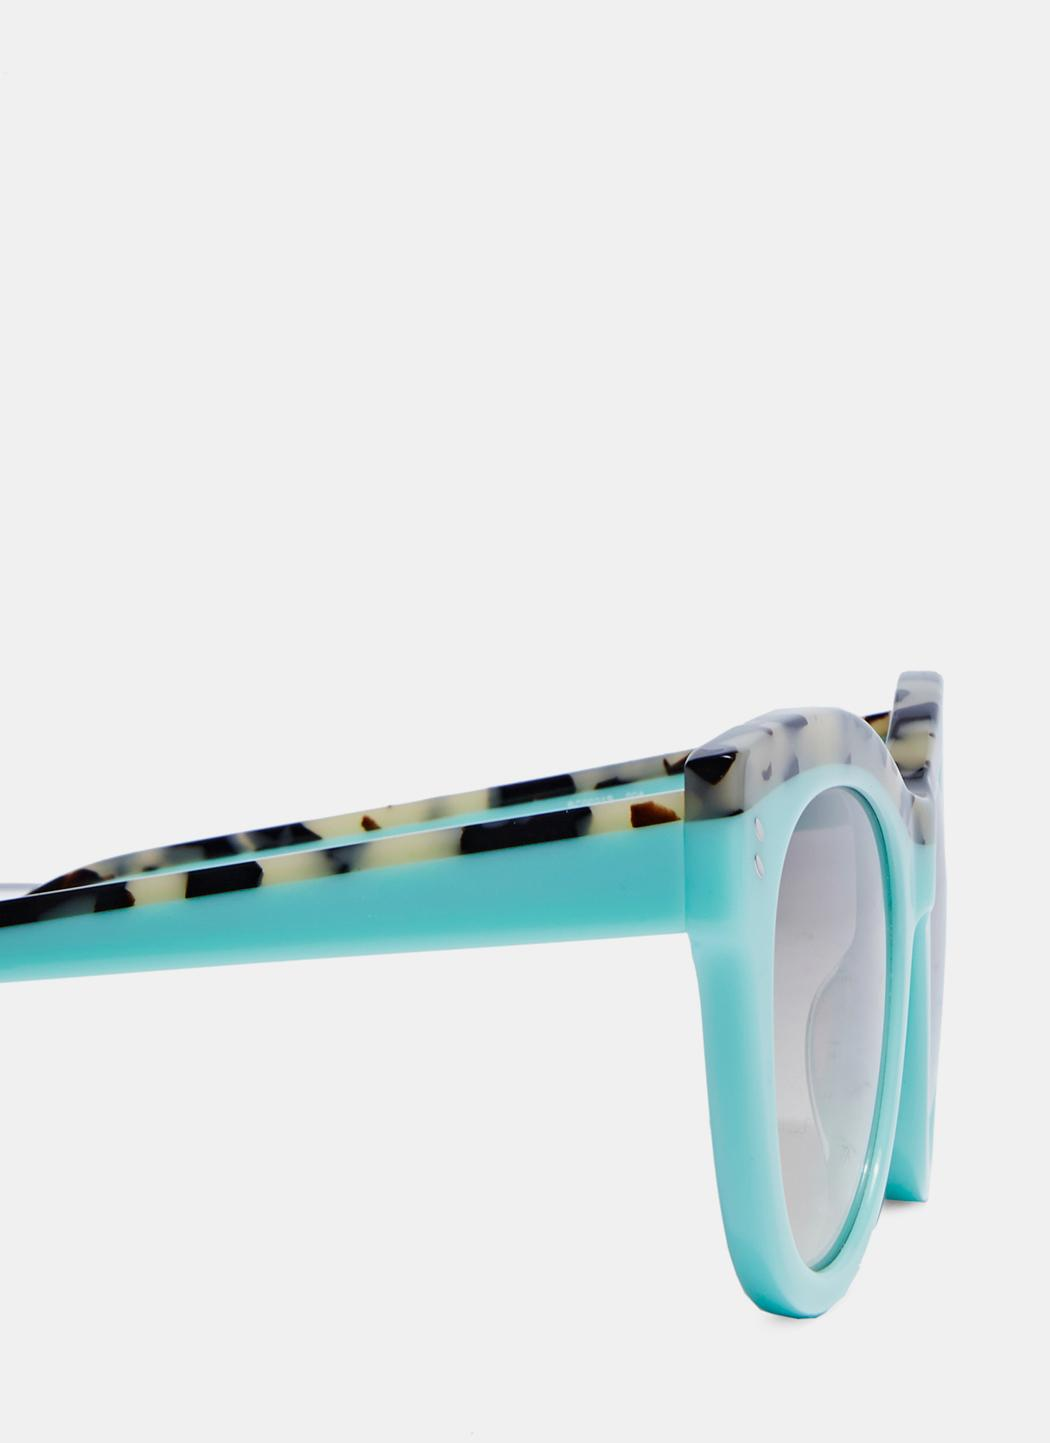 Stella McCartney Women's Classic Oversized Sunglasses In Mint And Grey in Blue